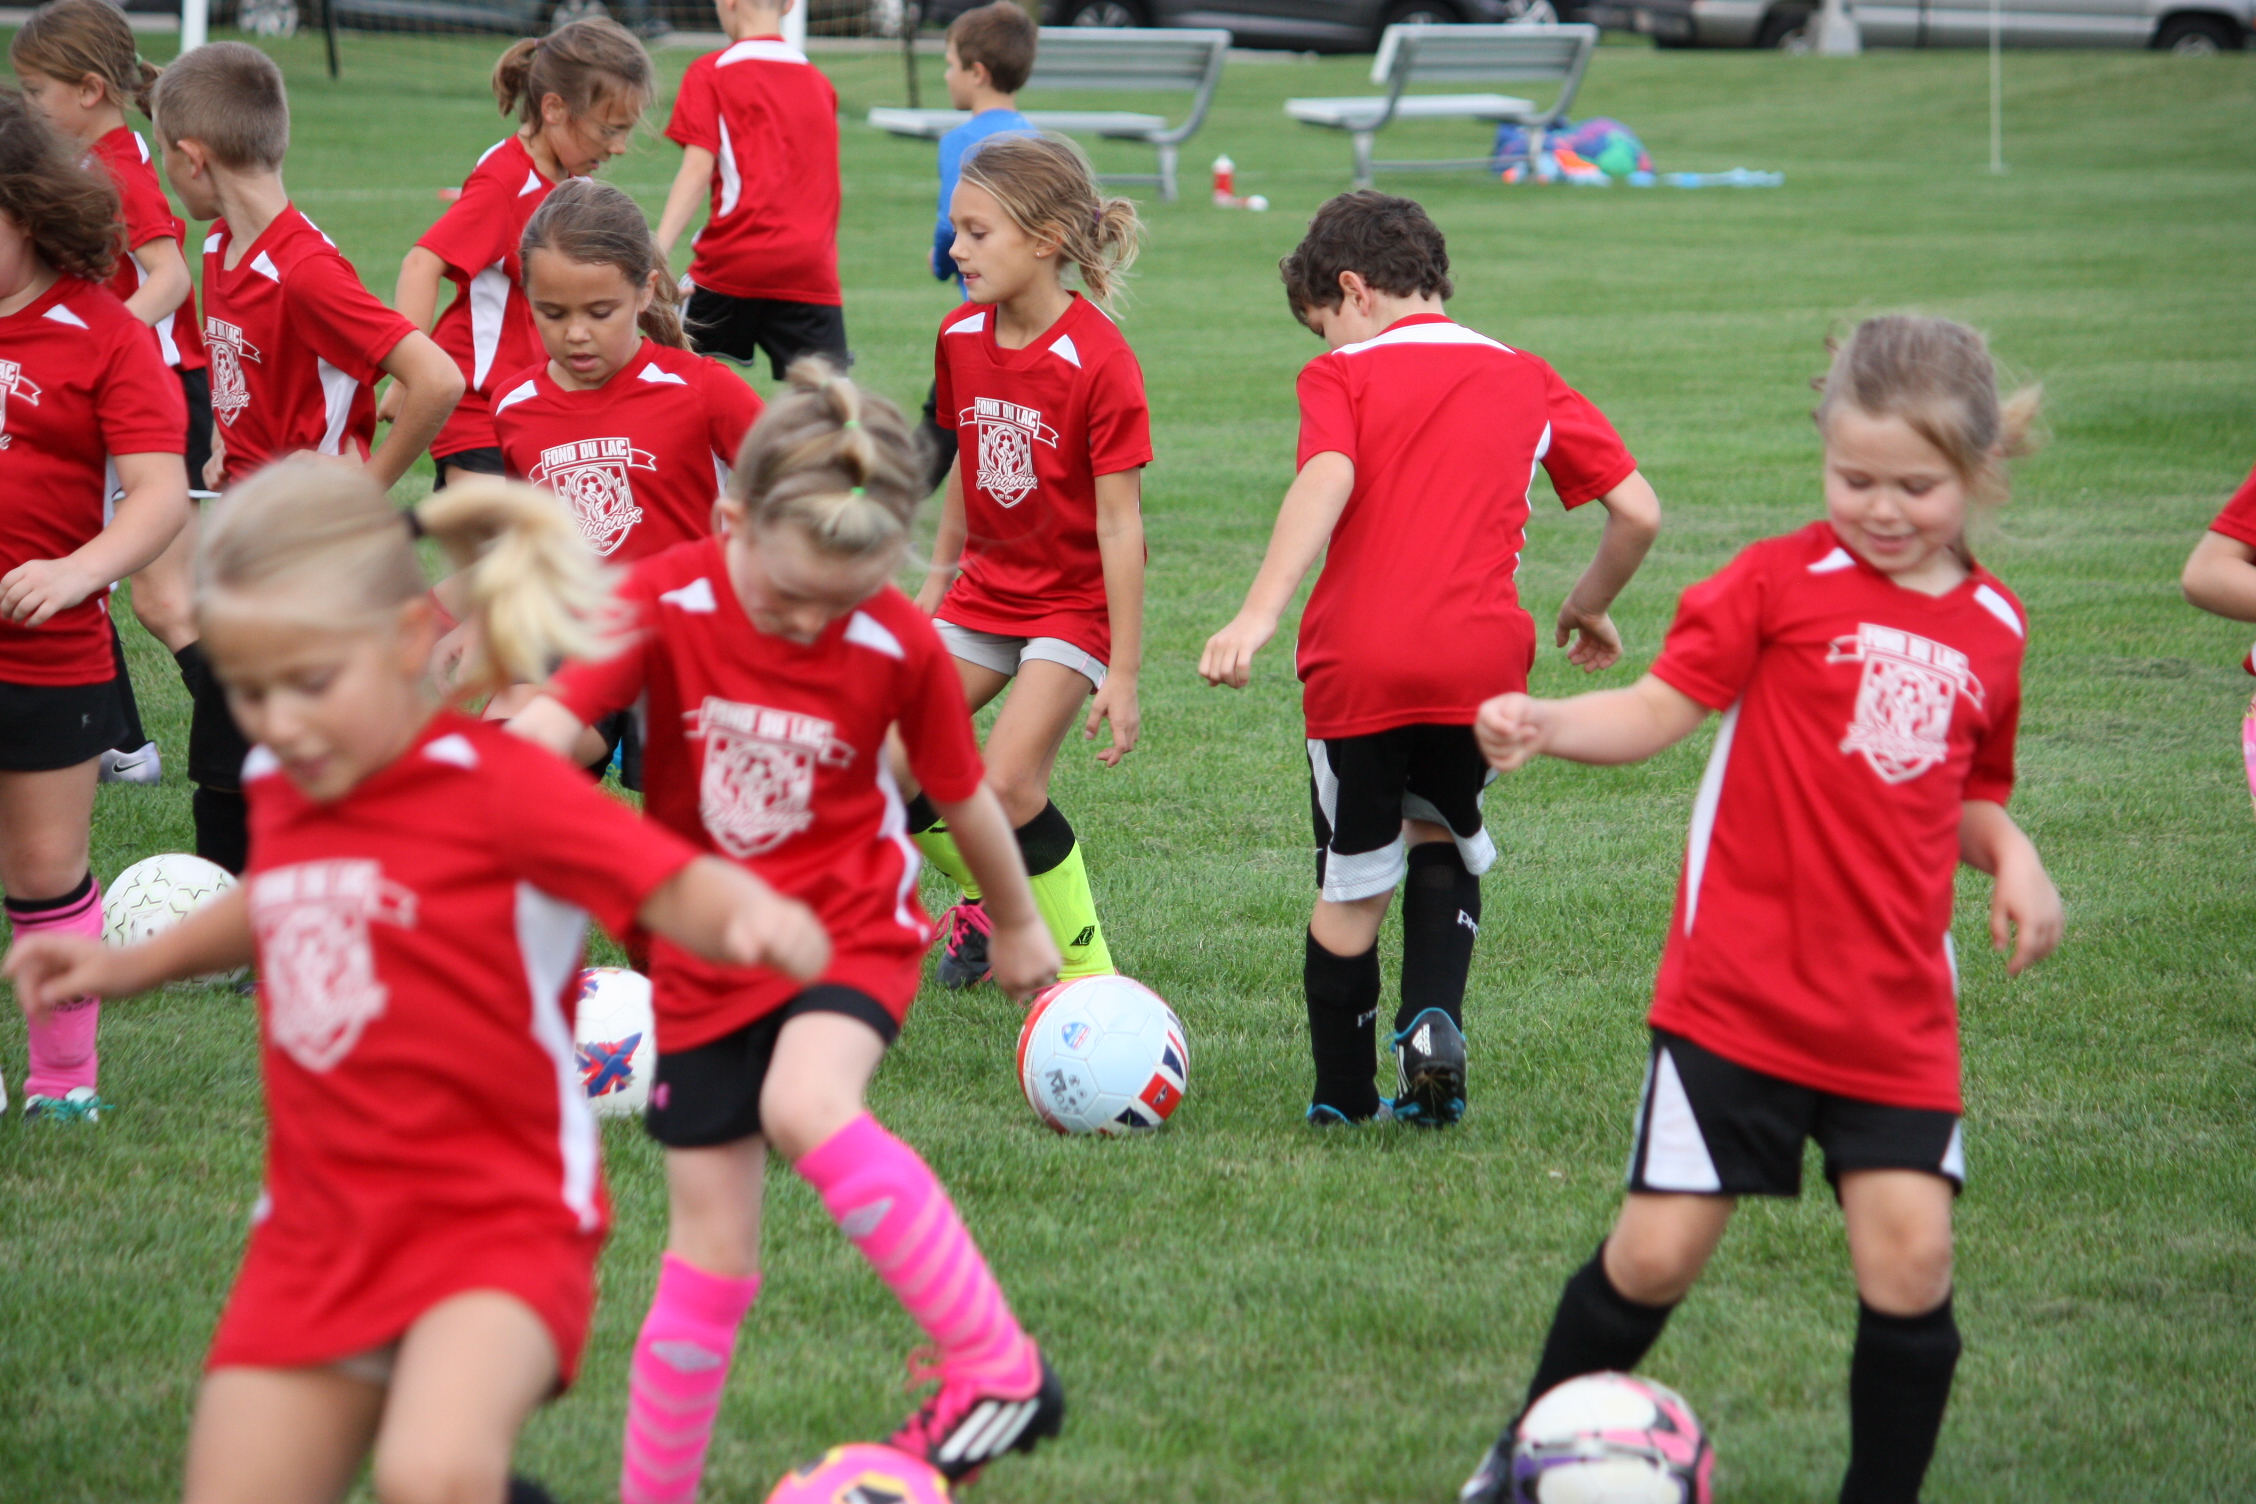 U6-U10 Academy Training Begins April 5th